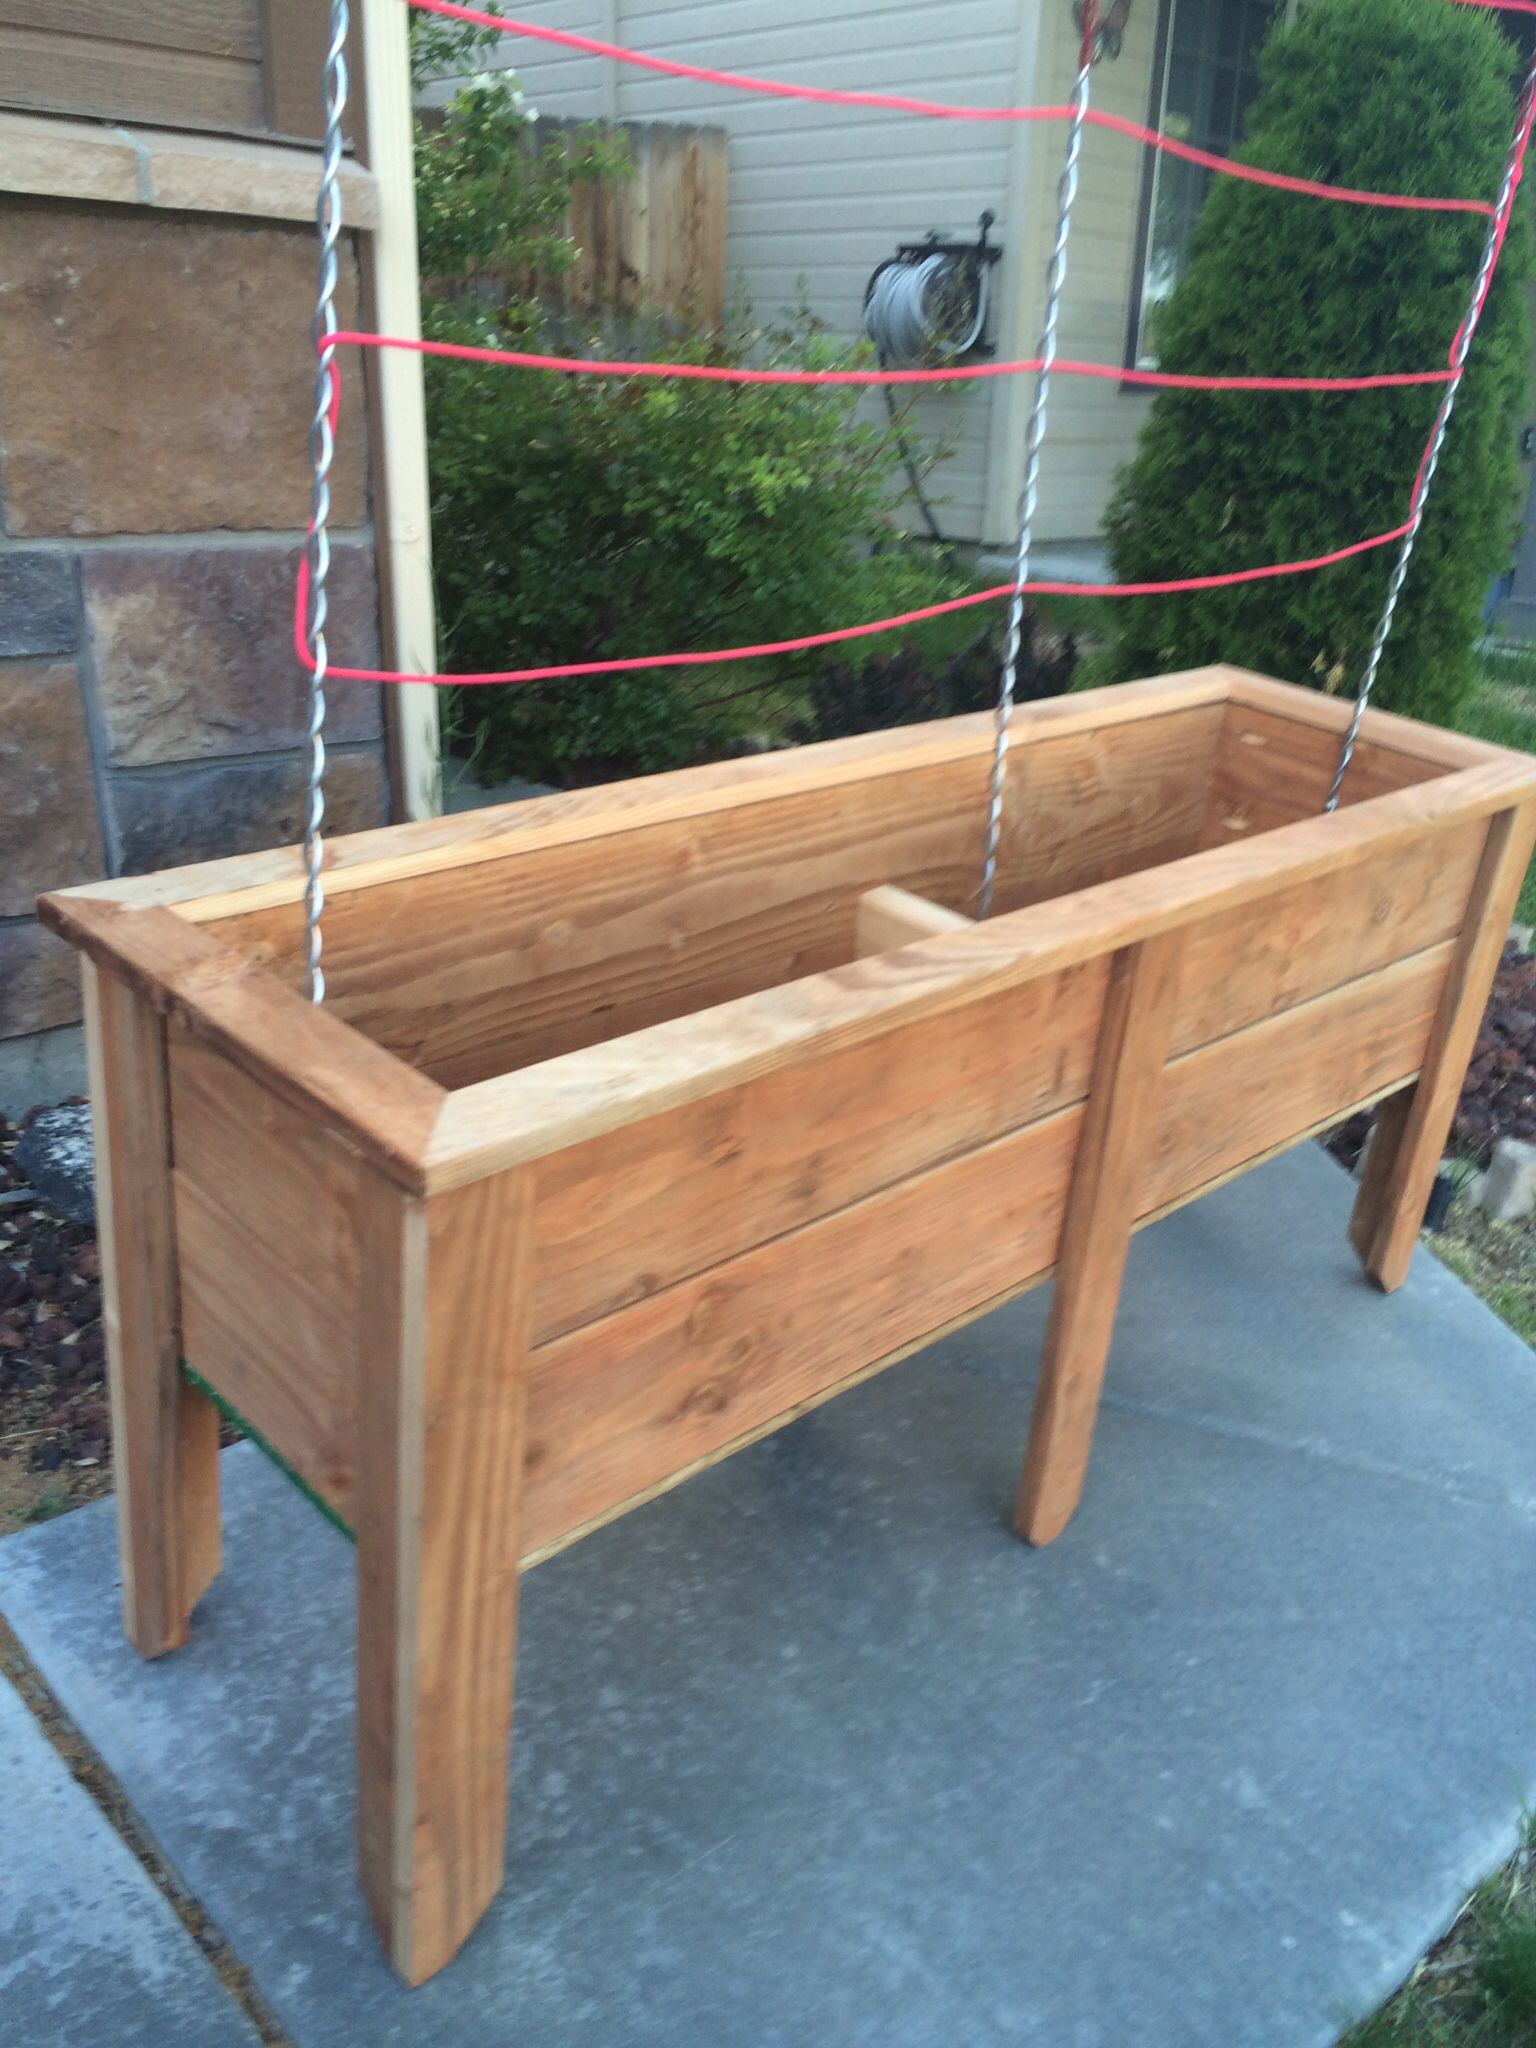 Planter Box Made Out Of 5 Stained Fence Pickets Using A Table Saw, A Couple